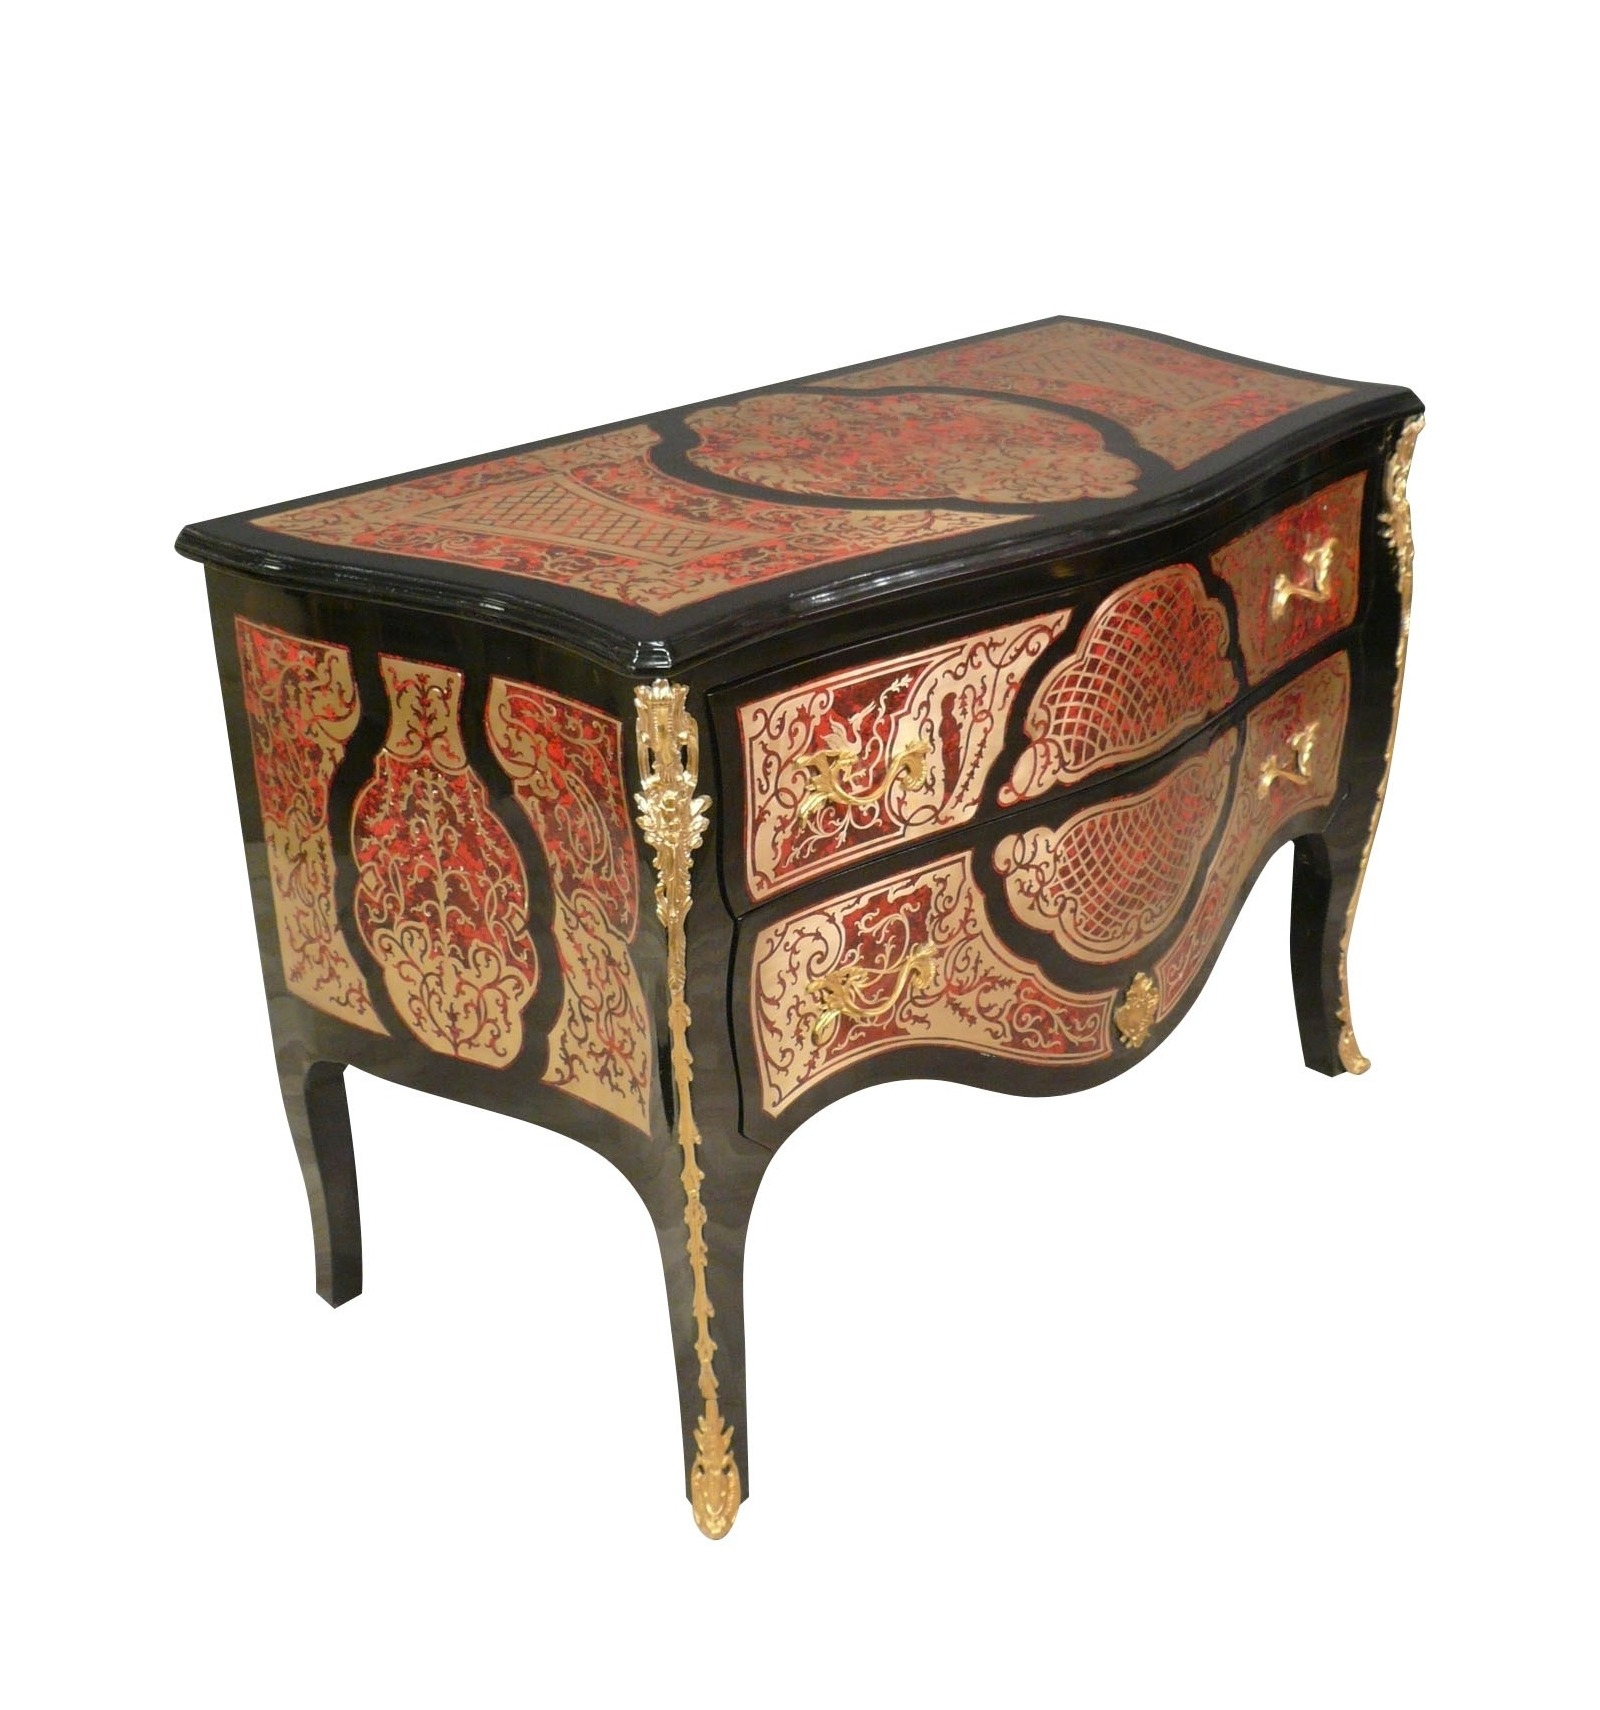 louis xv commode in marquetry boulle style furniture. Black Bedroom Furniture Sets. Home Design Ideas